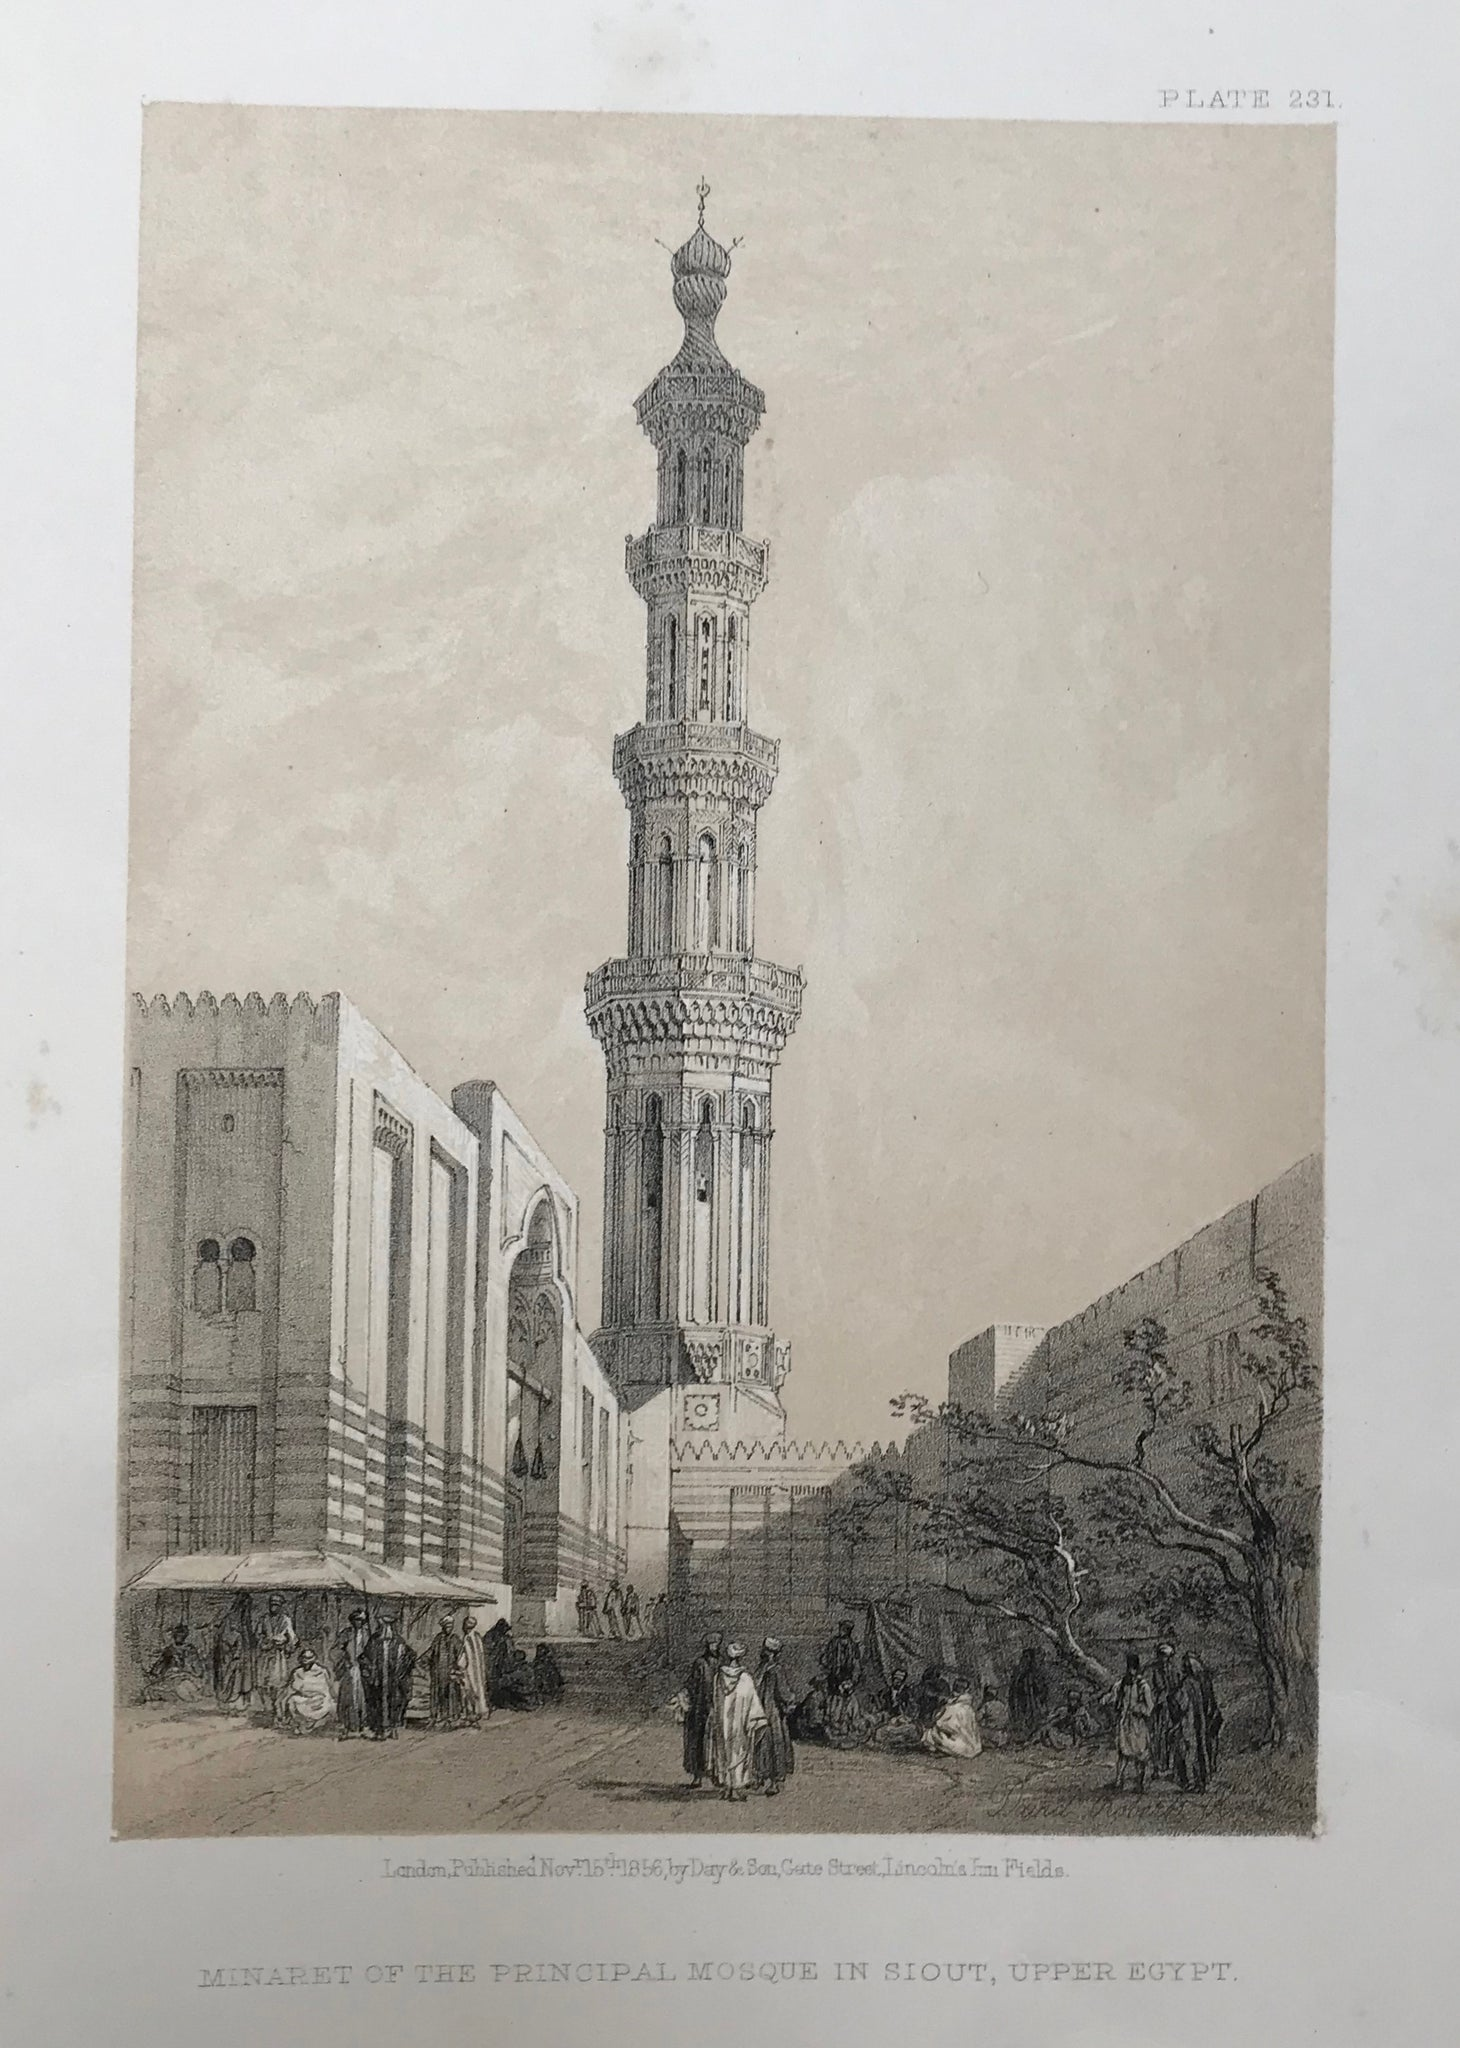 "Original Antique Lithographs  by David Roberts  (1796 Edinburgh - London 1864)  ""Minaret of the Principal Mosque in Siout, Upper Egypt""  This lithograph is from the 1855 edition published in quarto size by Day and Son in London. It is dated Nov. 15th, 1855. Included is an extra page of text.  Very minor spotting in margins. Fine, clean image."